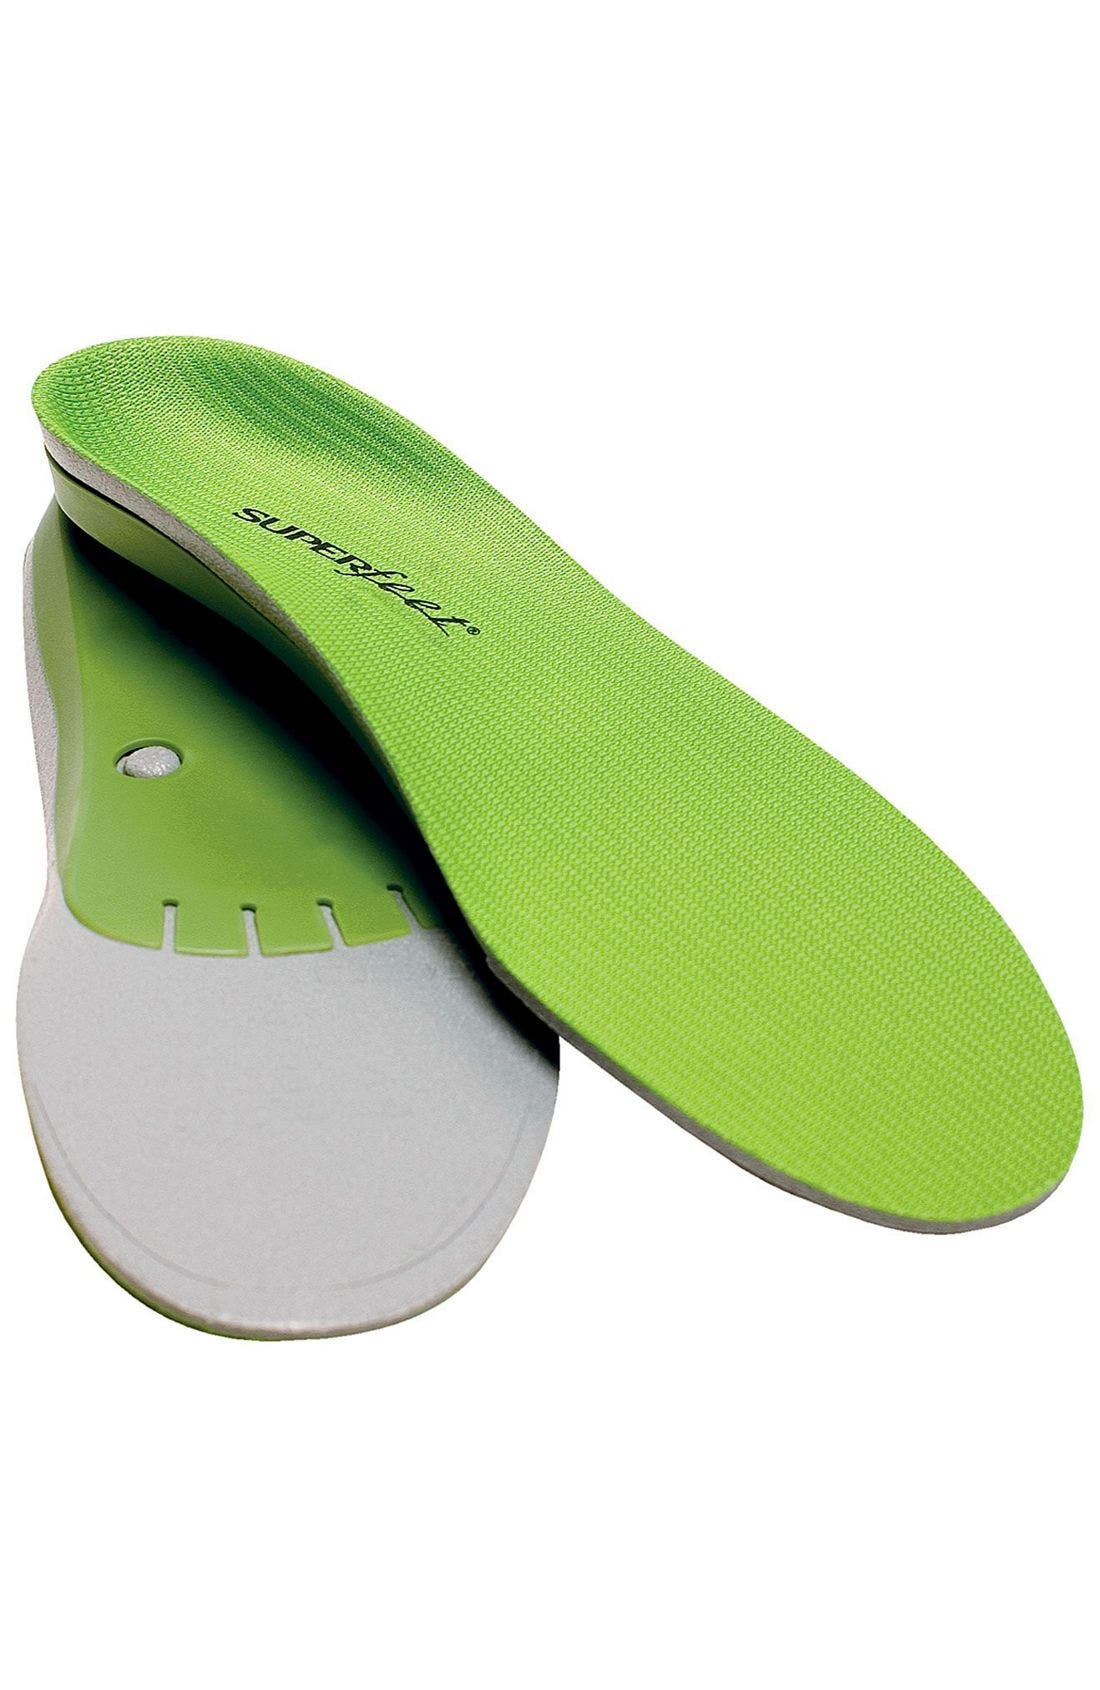 'Performance Green' Insoles,                         Main,                         color,